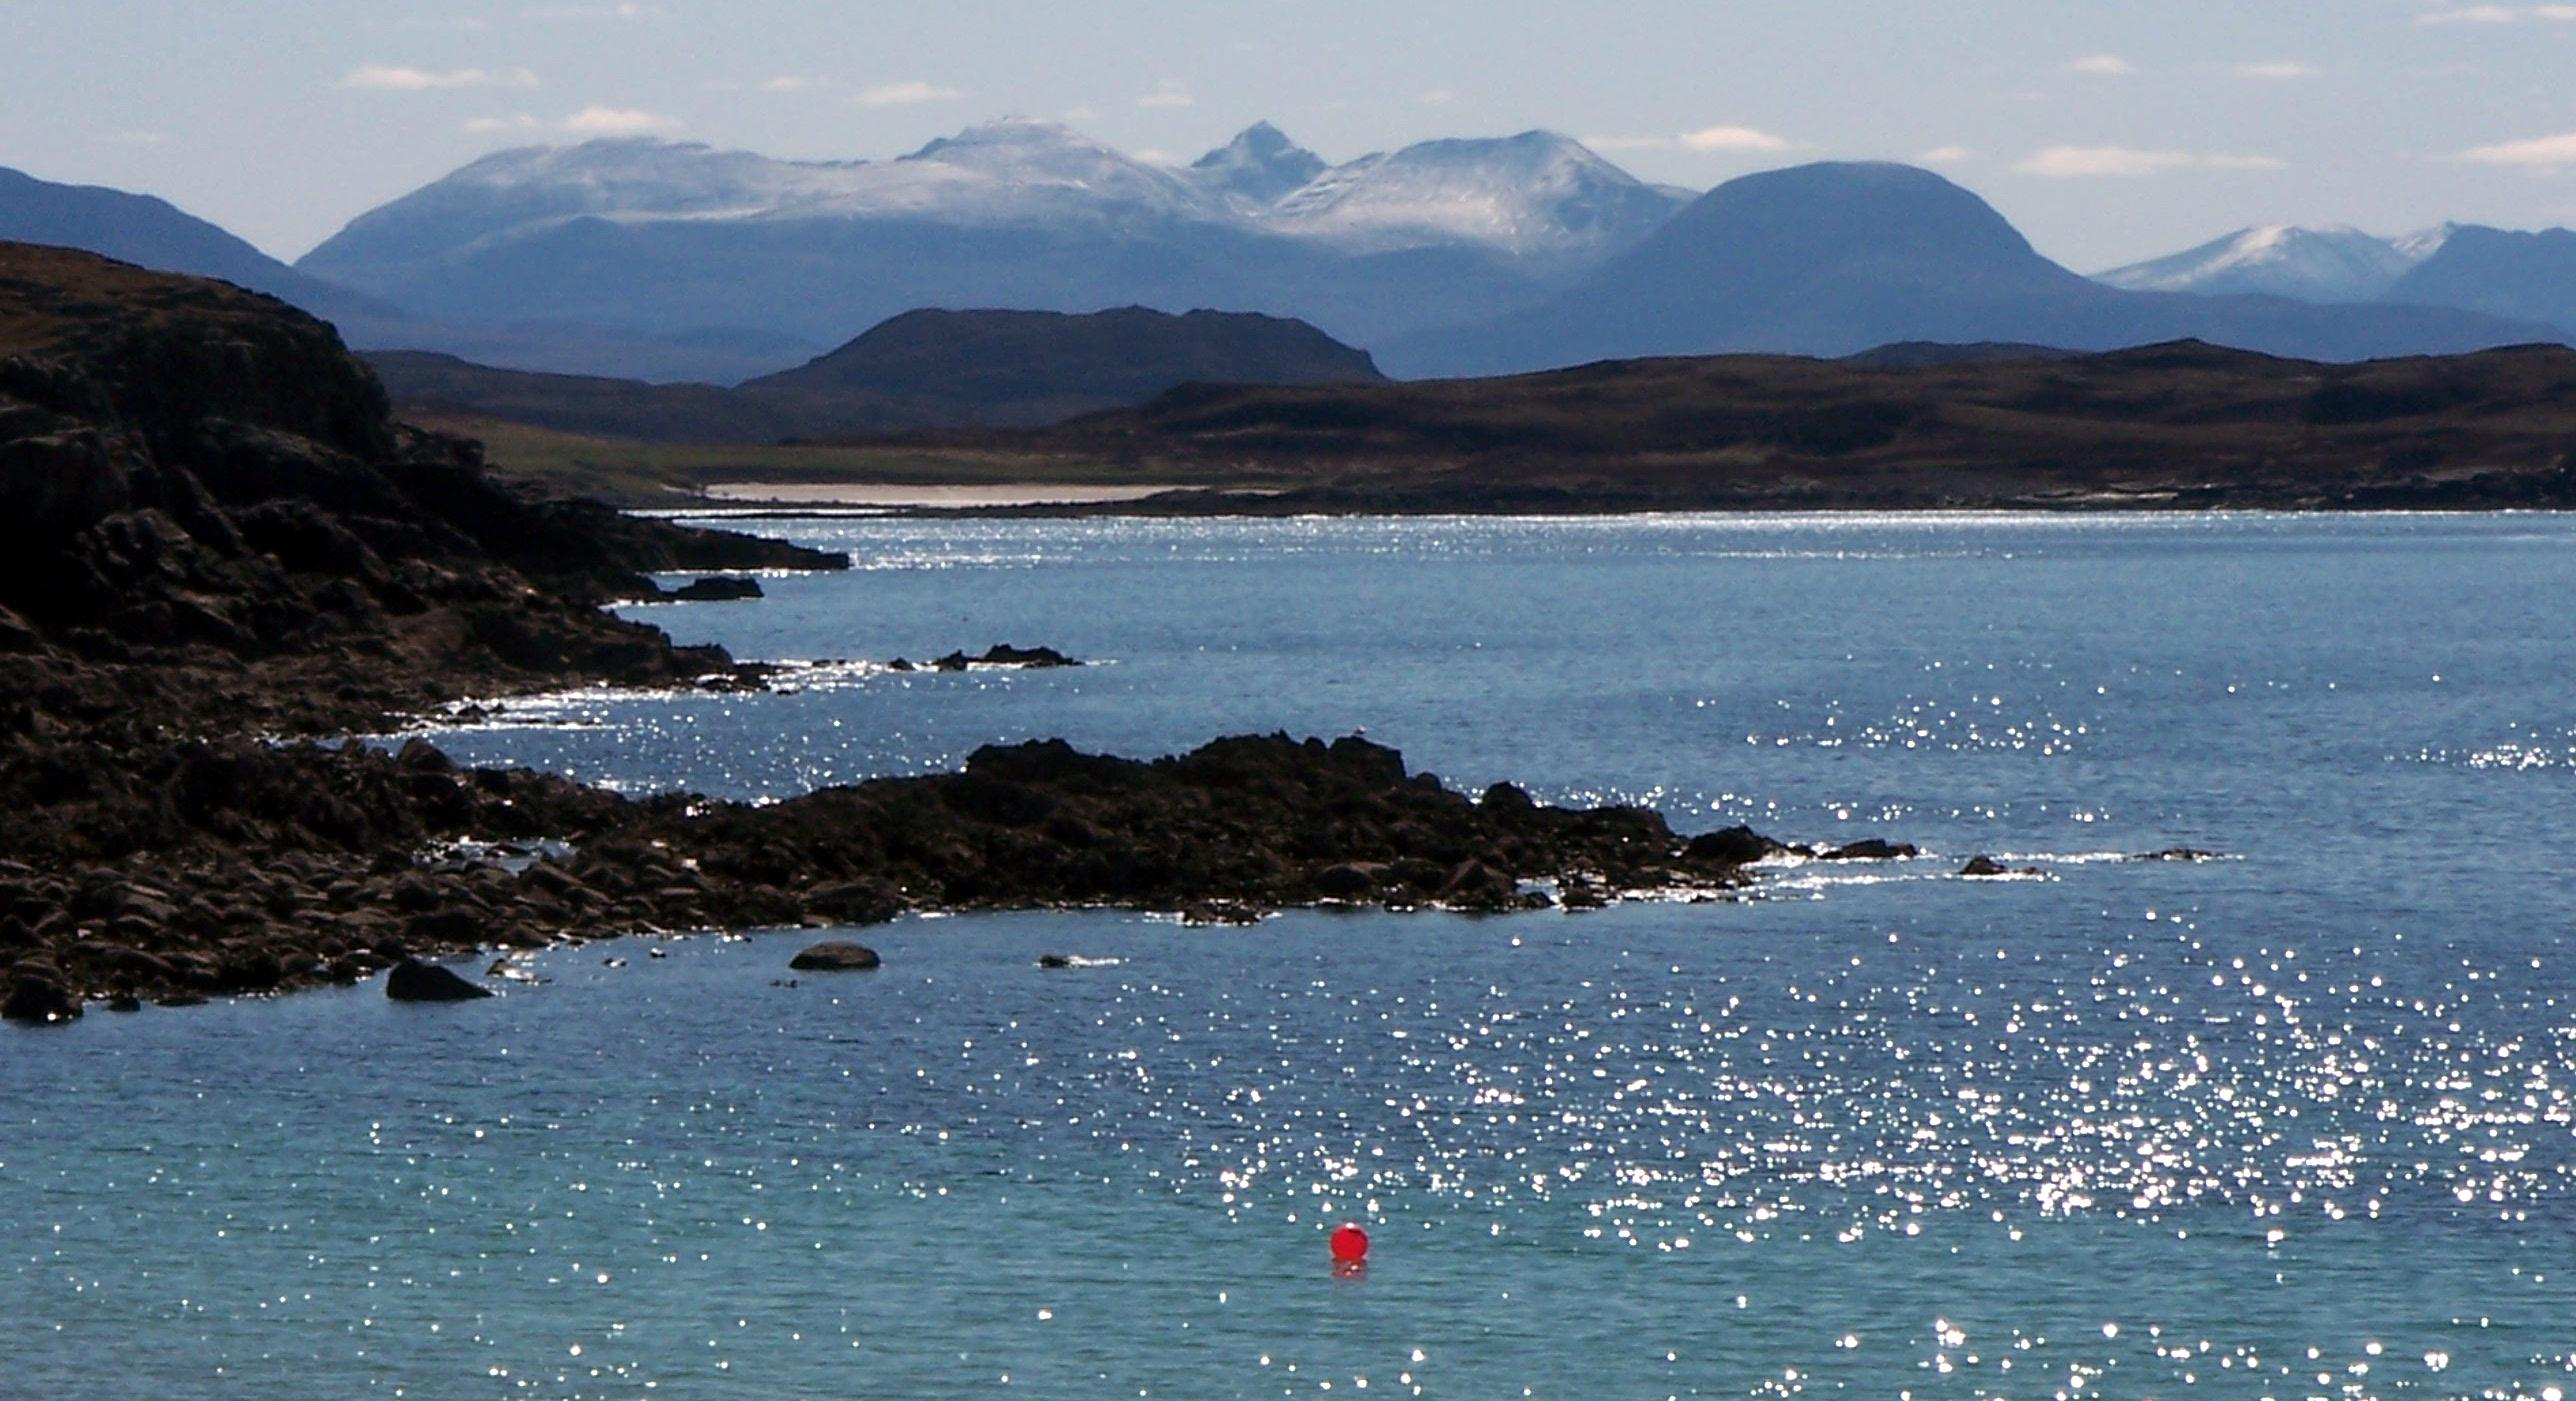 View across the Bay of Sail Mhor